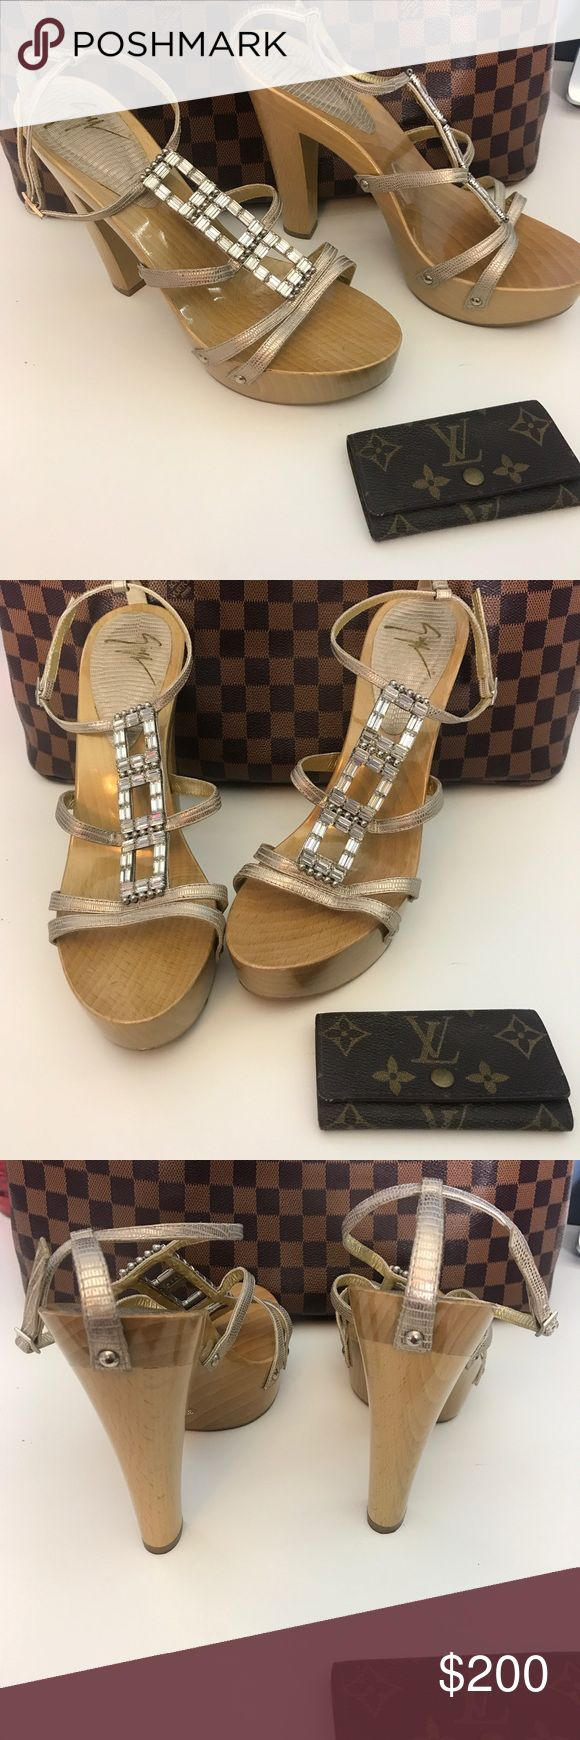 ❤️Offers welcome❤️ Giuseppe heels 👠 Entertaining reasonable offers . Size 38.5 in above average used condition. The brunt of the wear is on the bottoms. Feel free to ask questions or message us. 100% authentic ! Giuseppe Zanotti Shoes Heels